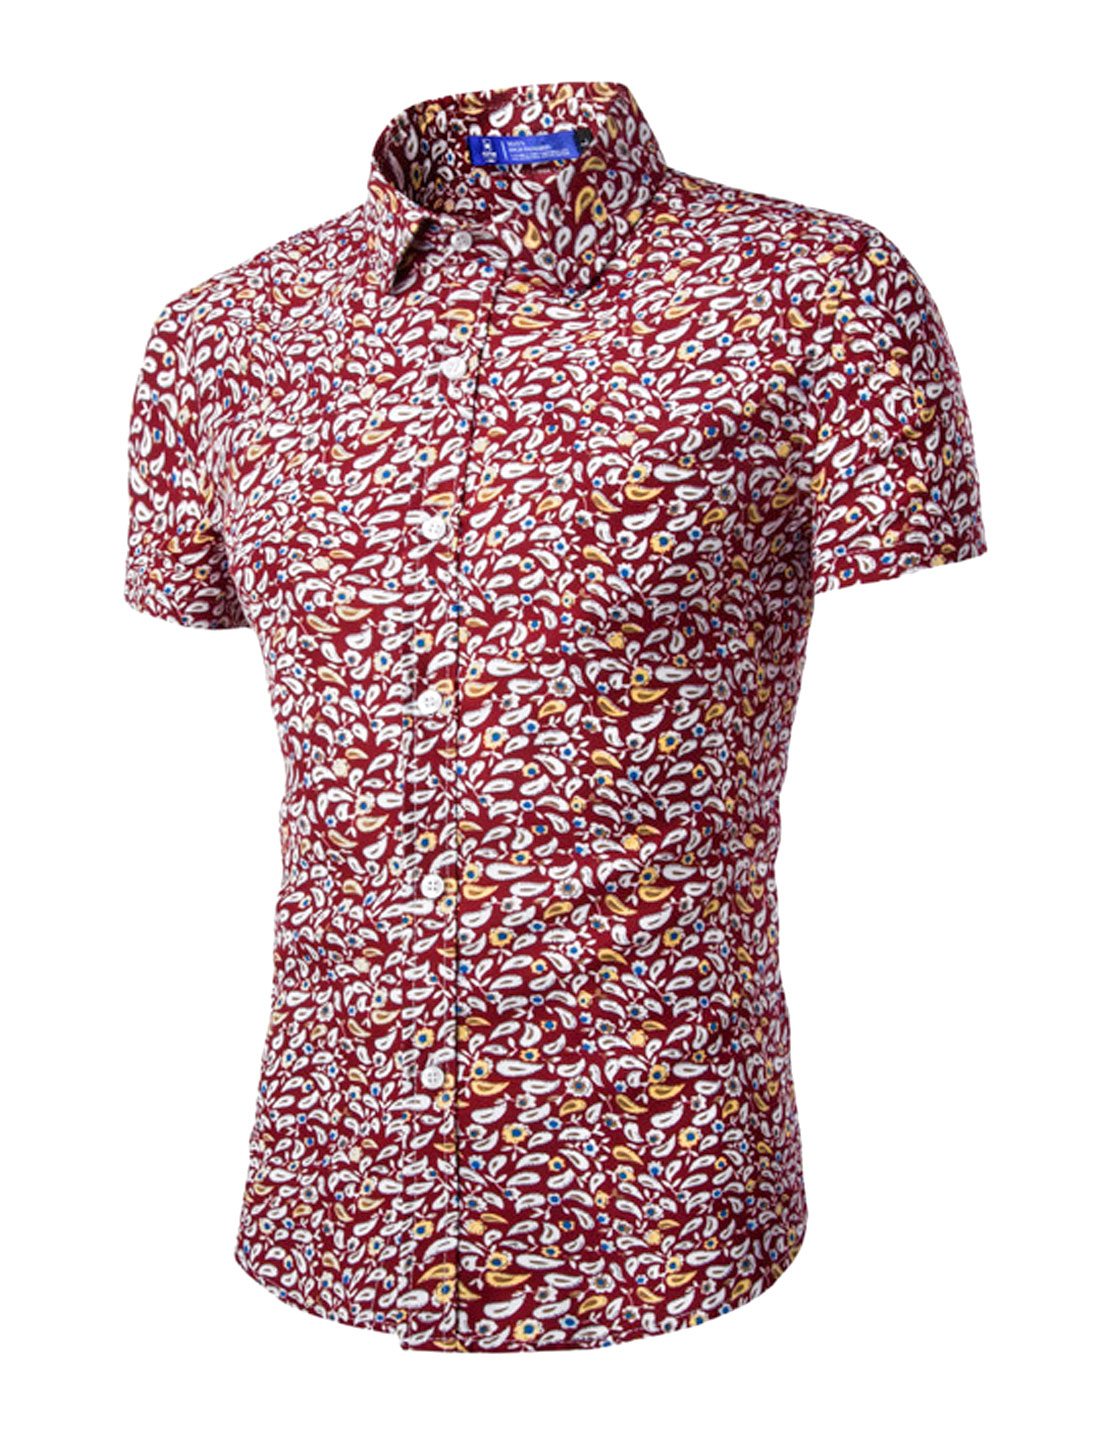 Men Short Sleeves Paisleys Floral Prints Button Down Shirt Red M